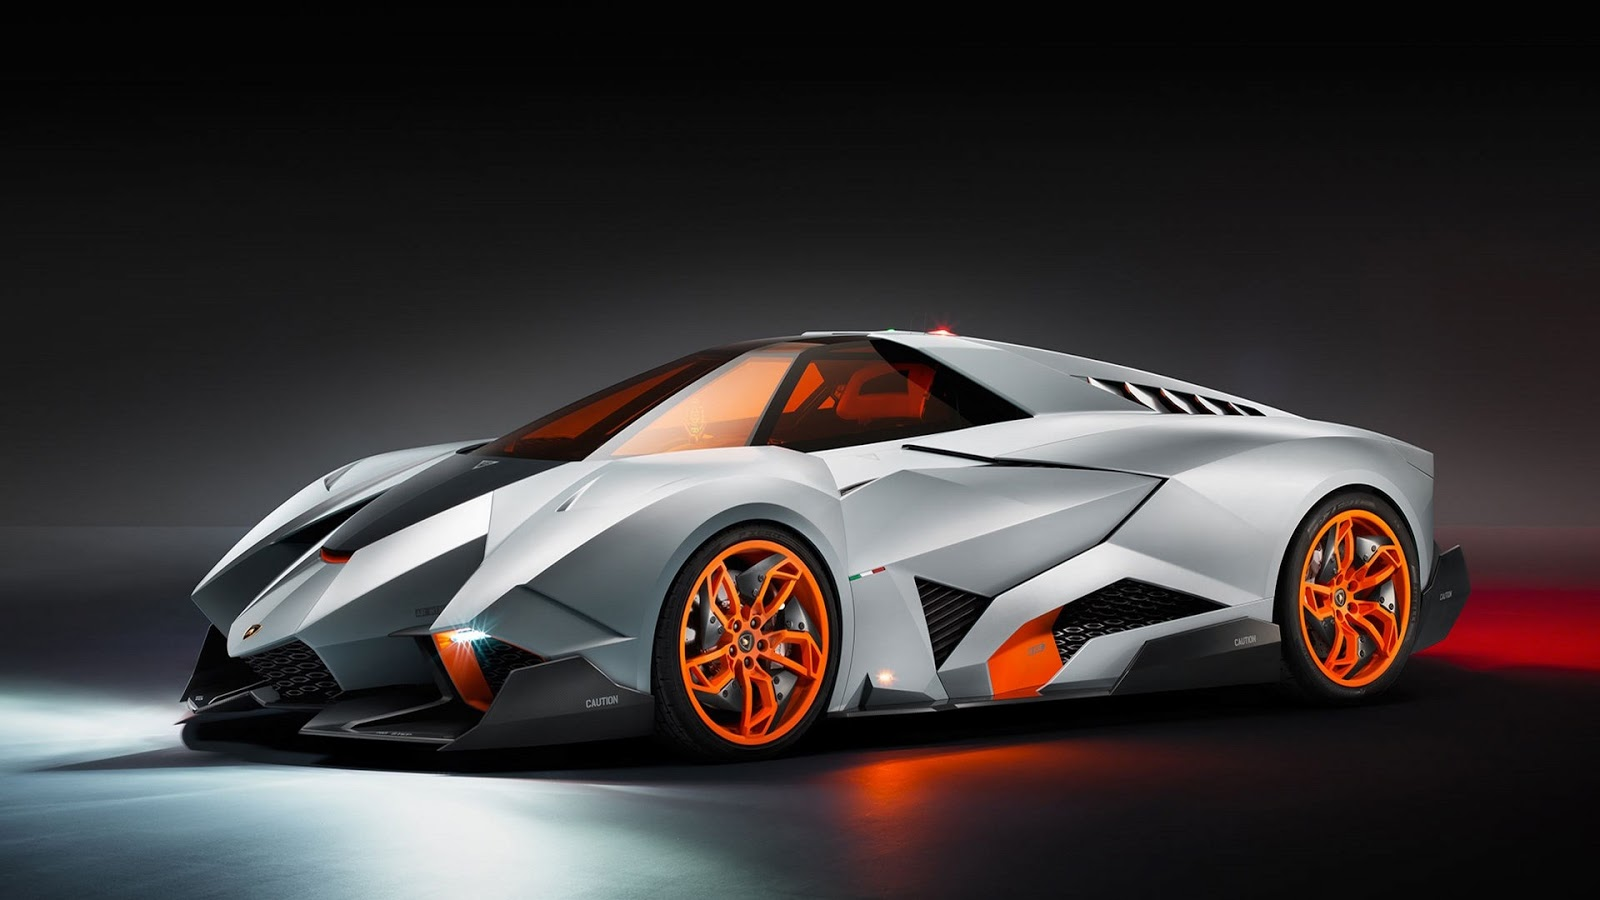 Lamborghini Egoista Hd 1080p Resim Hd Wallpapers